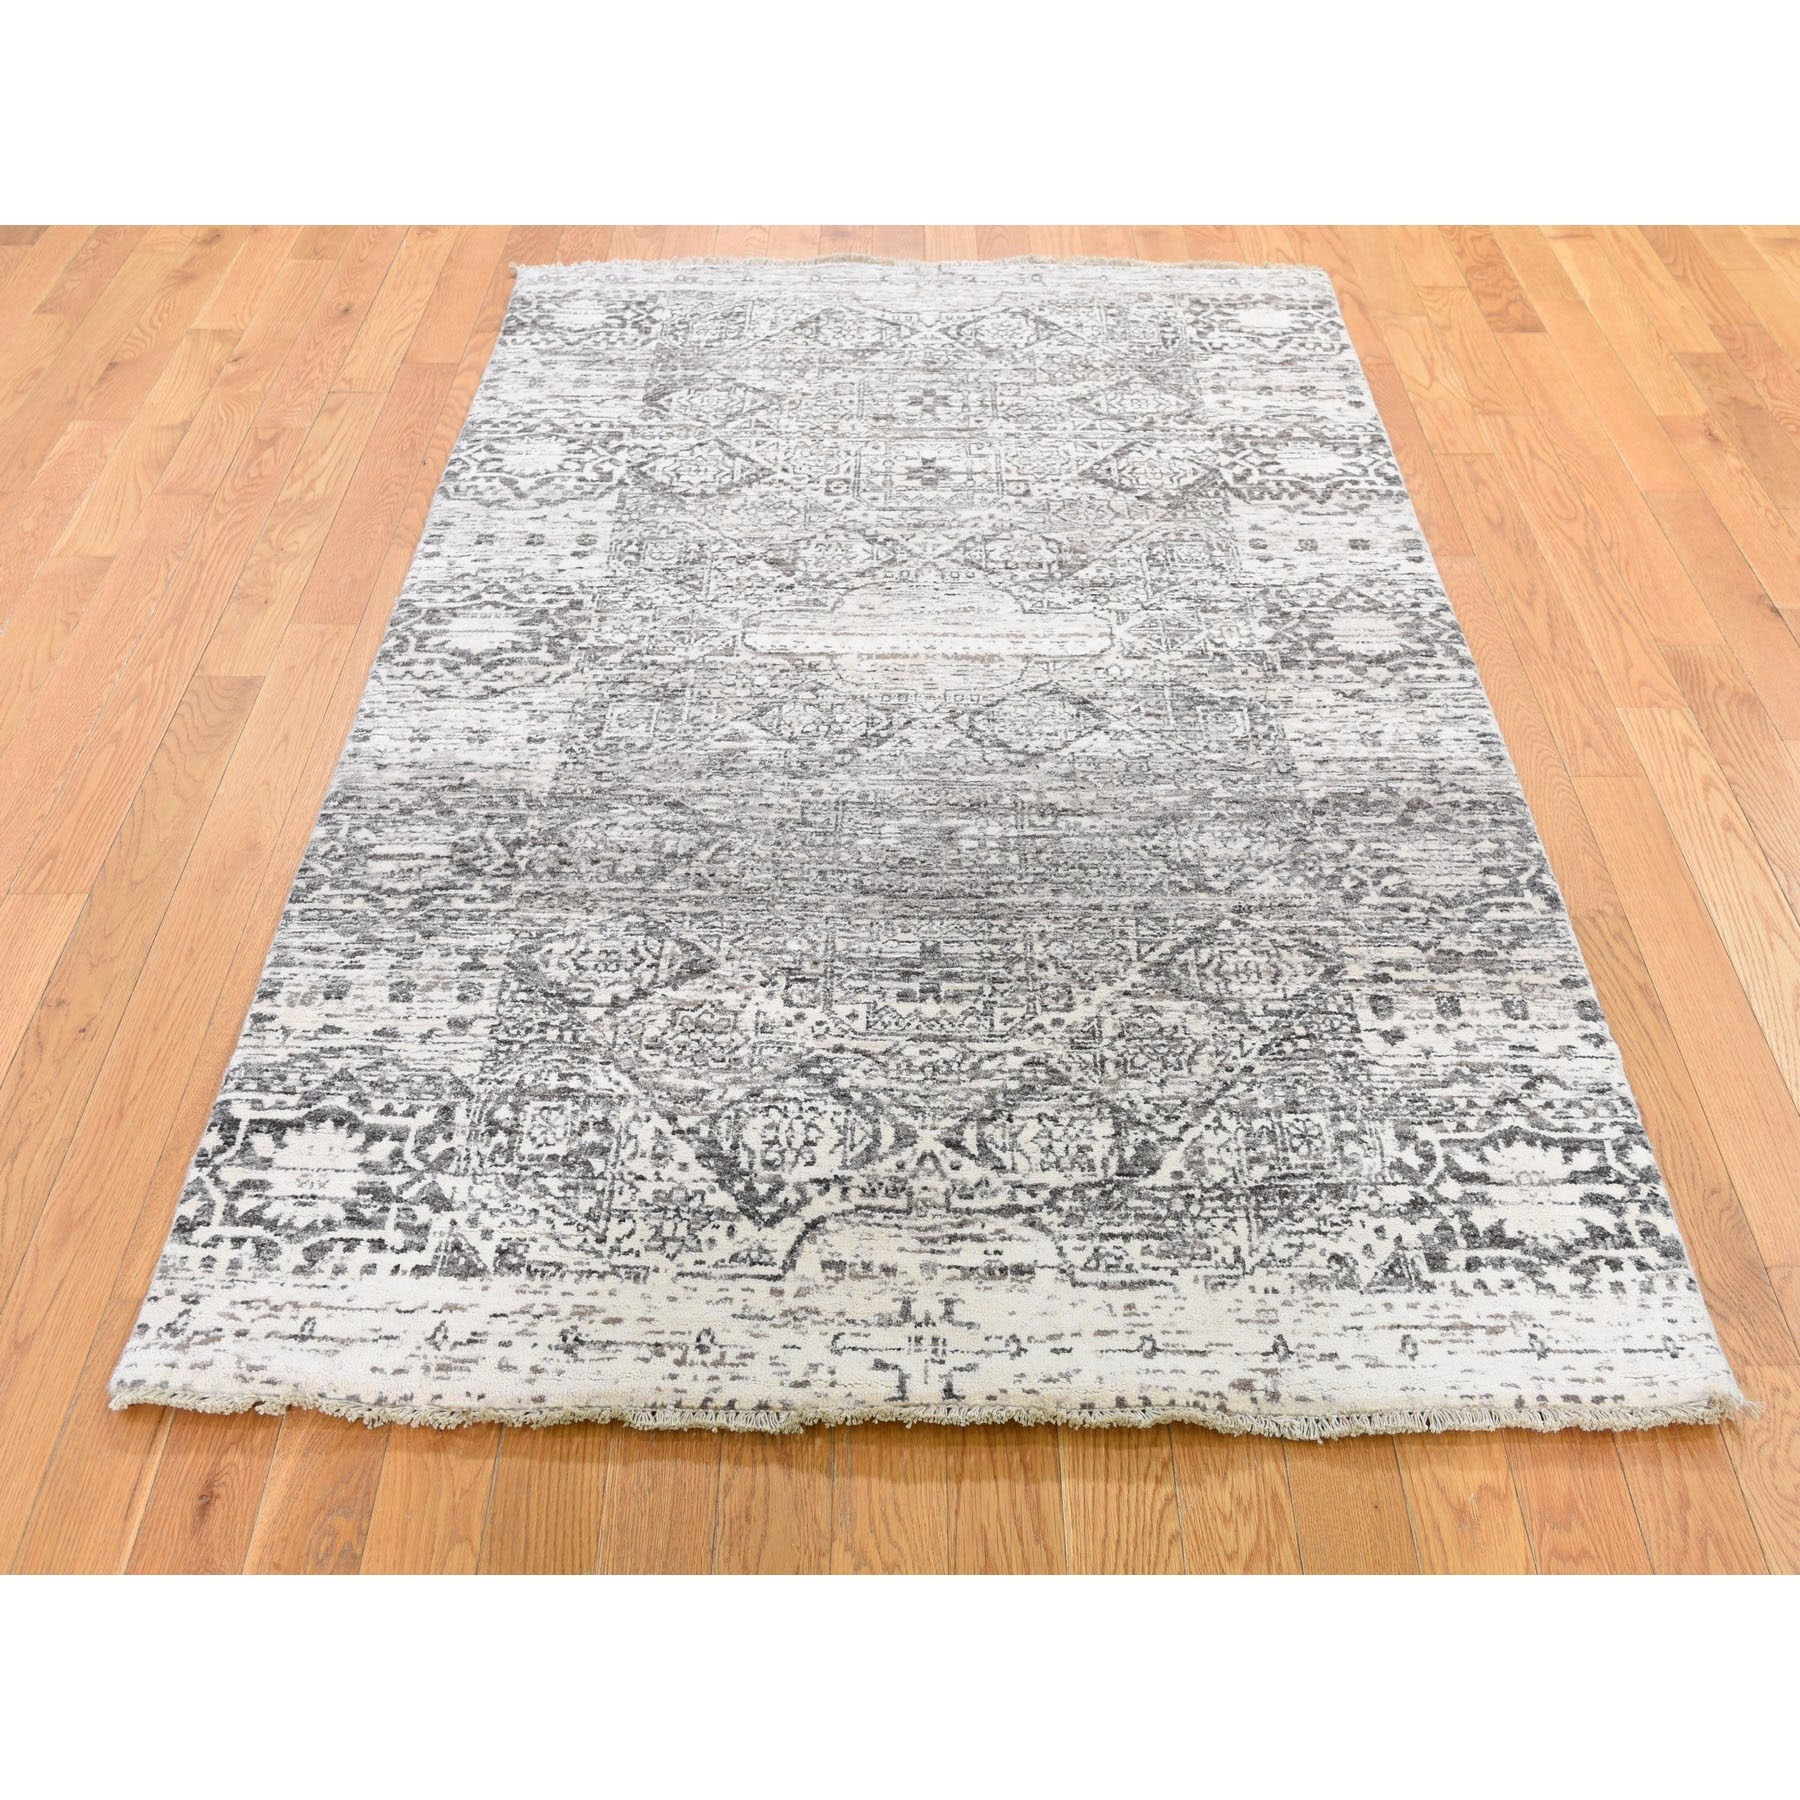 """4'x6'3"""" Undyed Natural Wool Mamluk Design Hand Knotted Oriental Rug"""